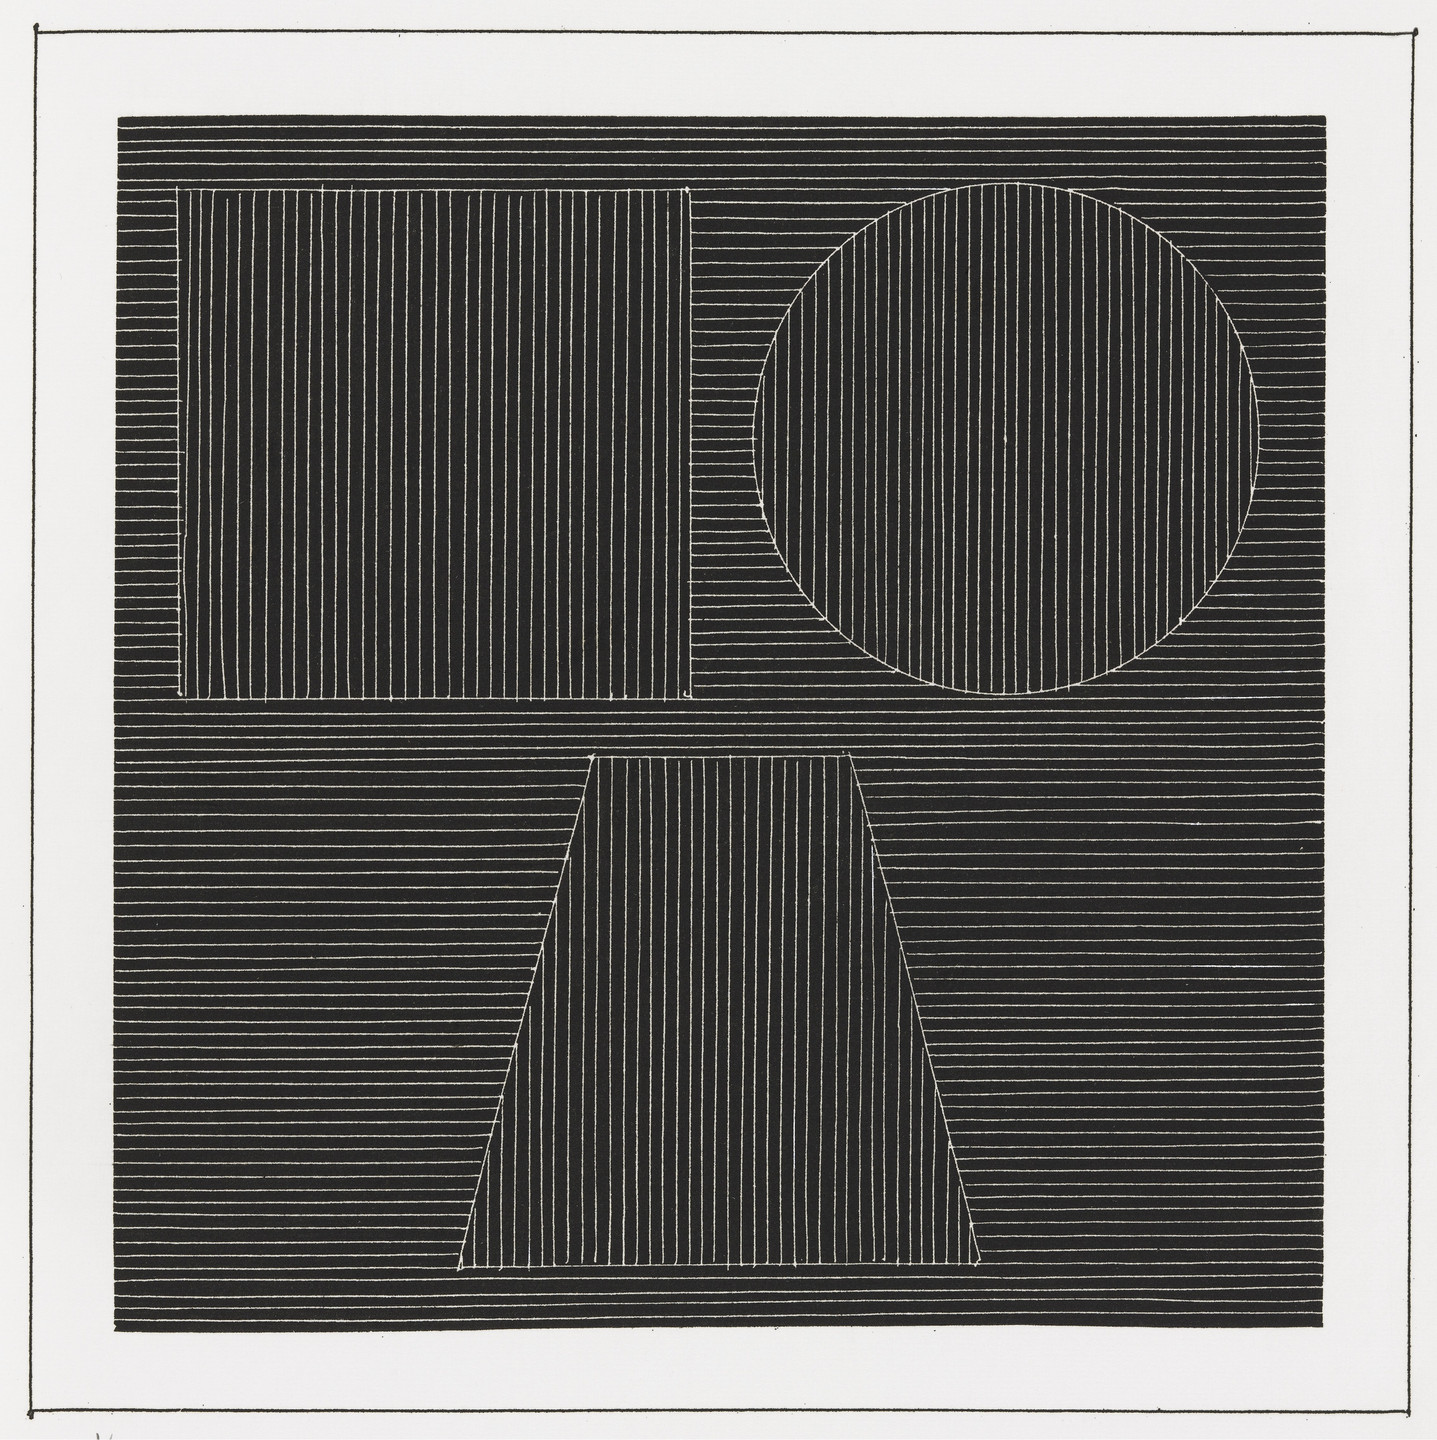 Sol LeWitt. Plate (folio 25) from Six Geometric Figures and All Their Combinations, Volume I. 1980